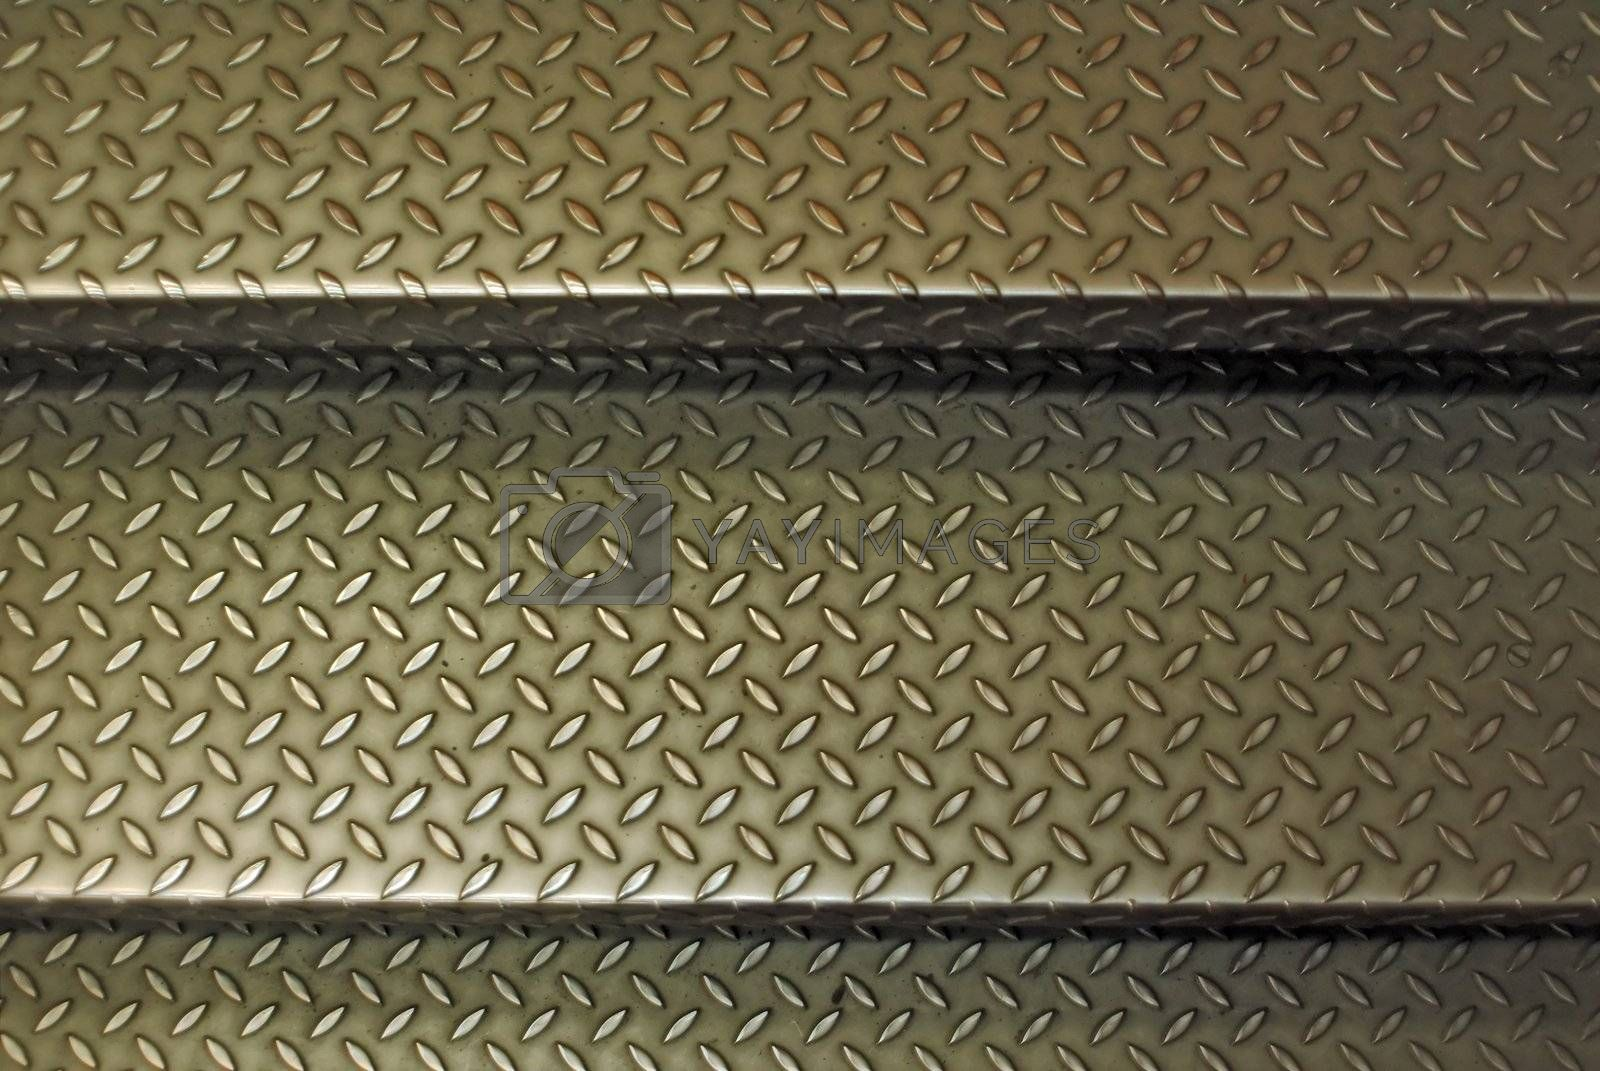 Old metallic stairs close up background texture